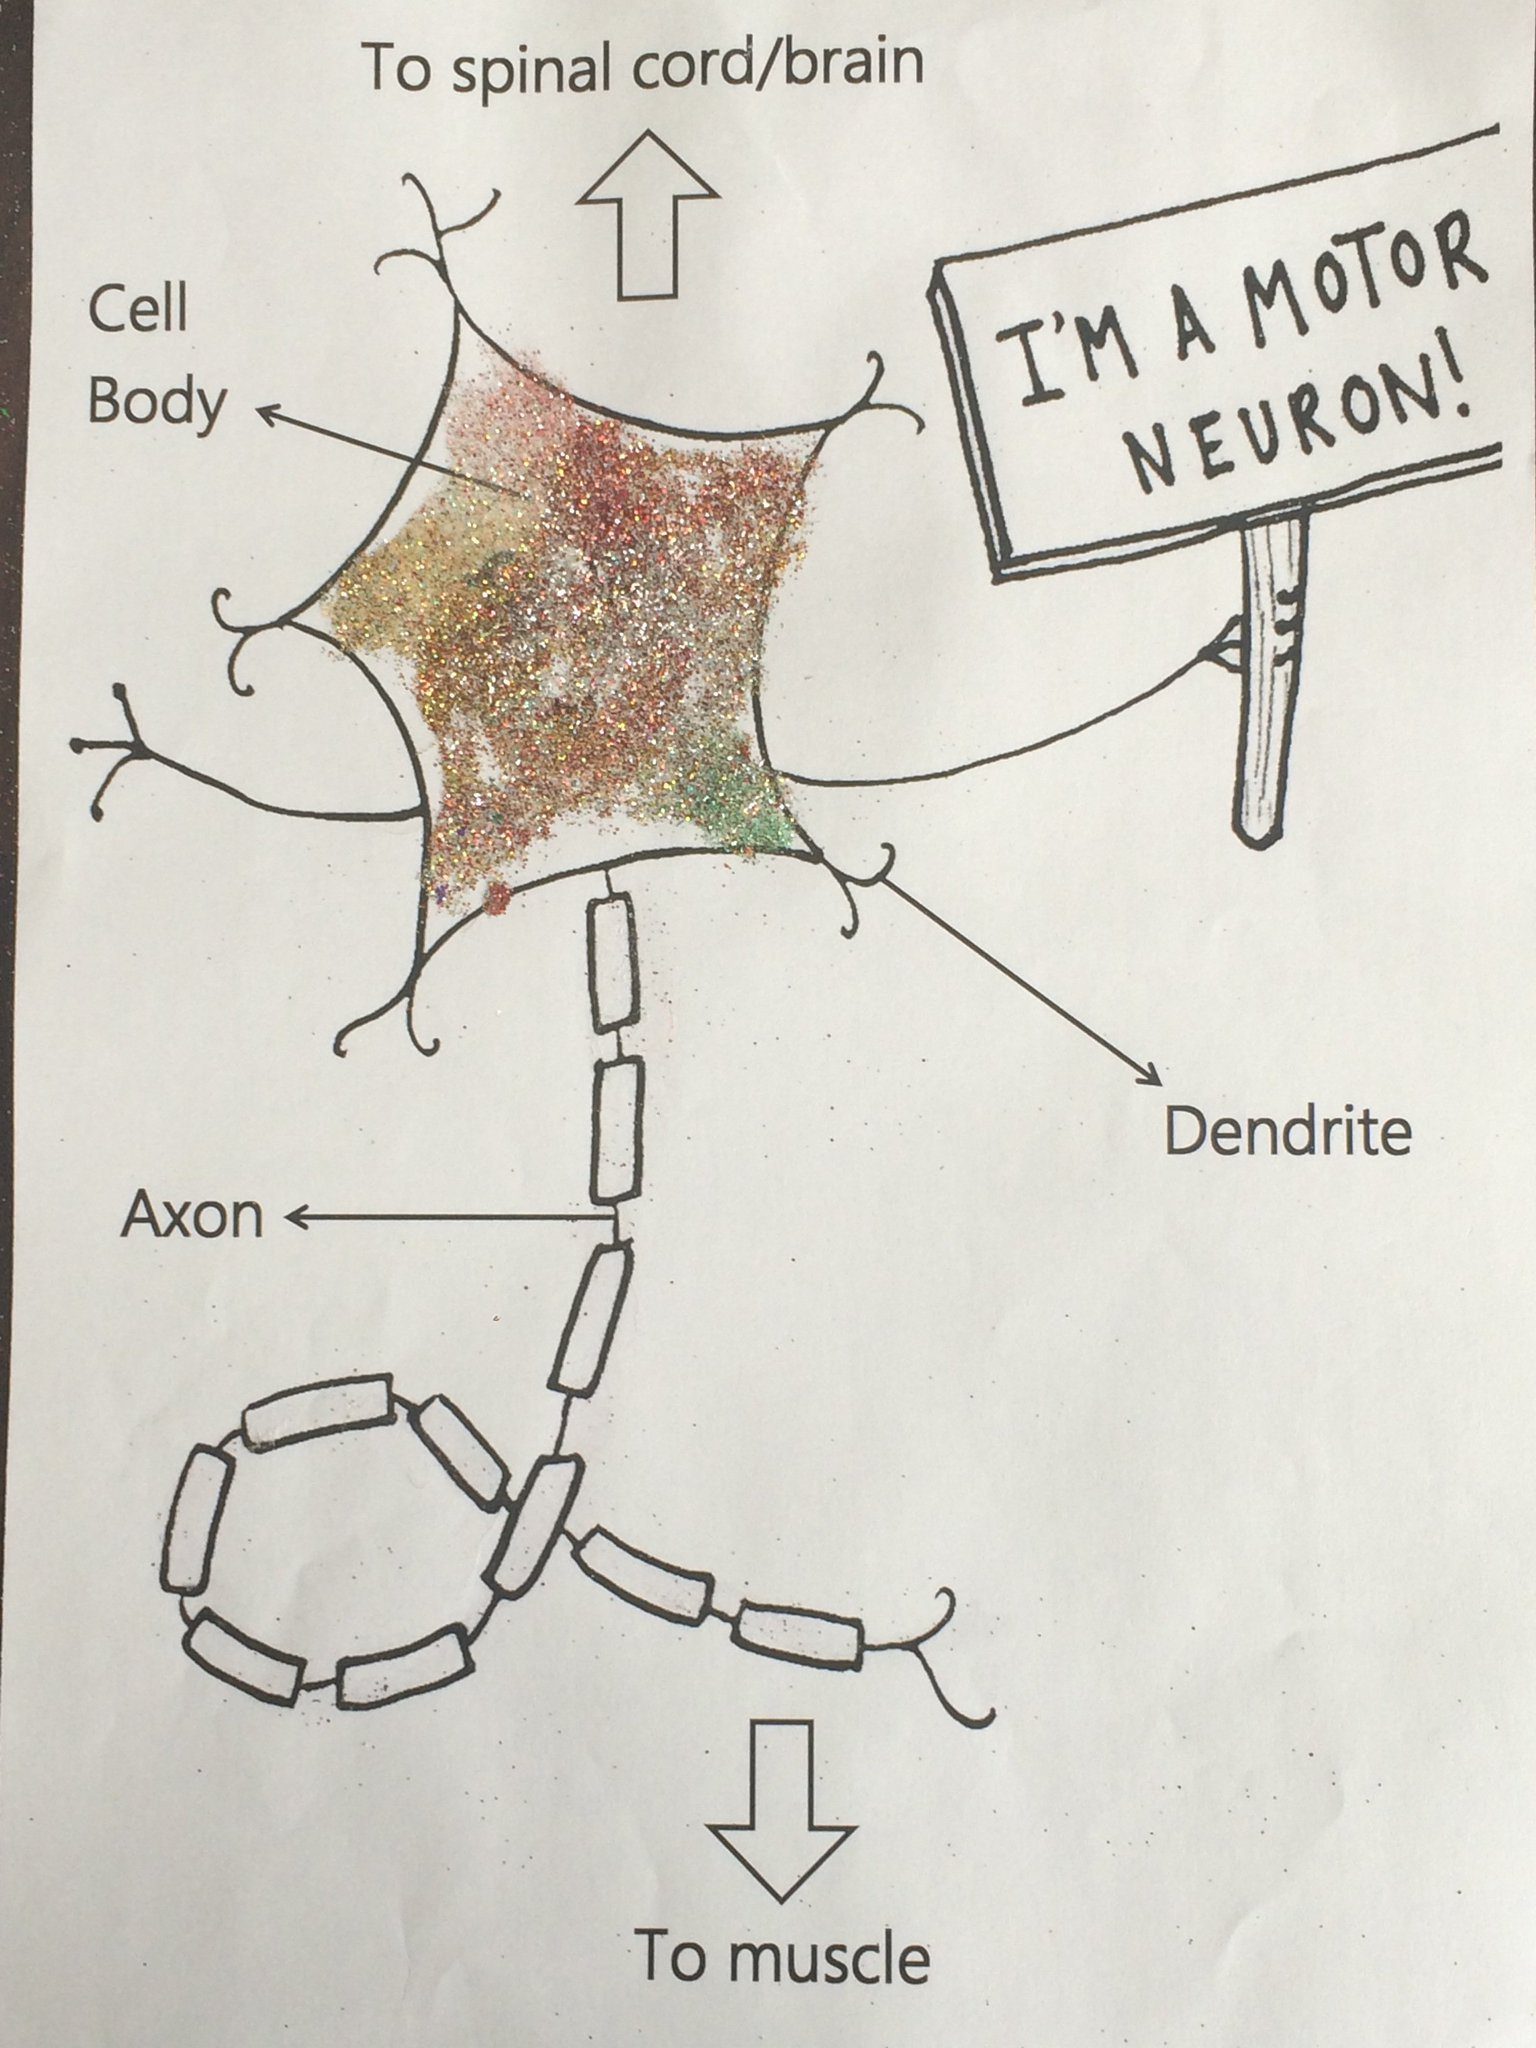 Inspiring Children into Science through Art: entry 18: #STEM #scienceisfun #stemcells #sciart #Innovate4globaled #edutweets @PataniLab https://t.co/sWY156bLTN